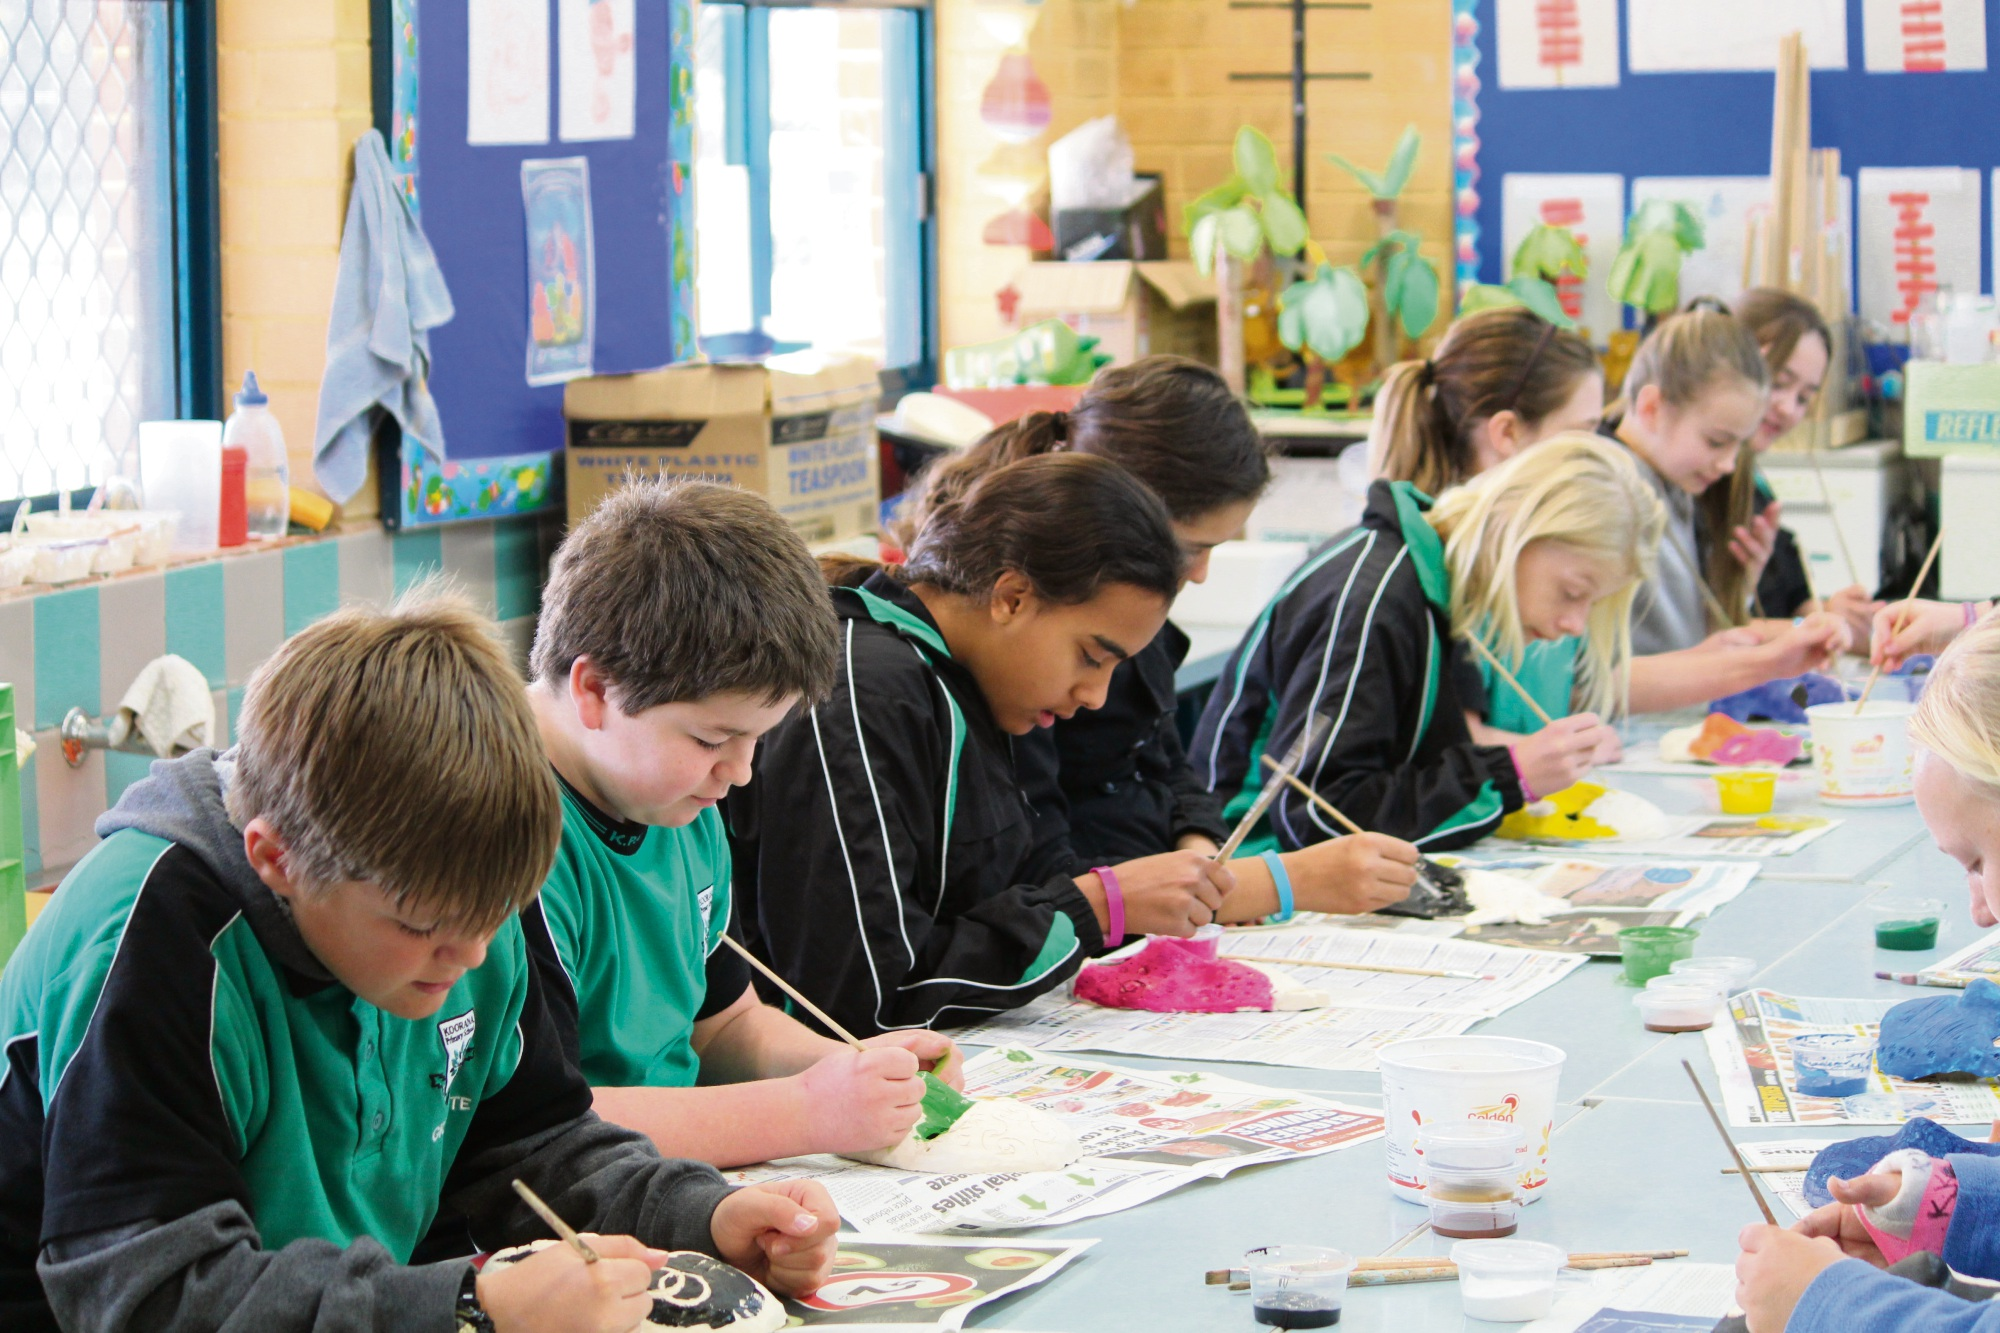 Year six student's work hard on their masks at Koorana Primary School during art class.